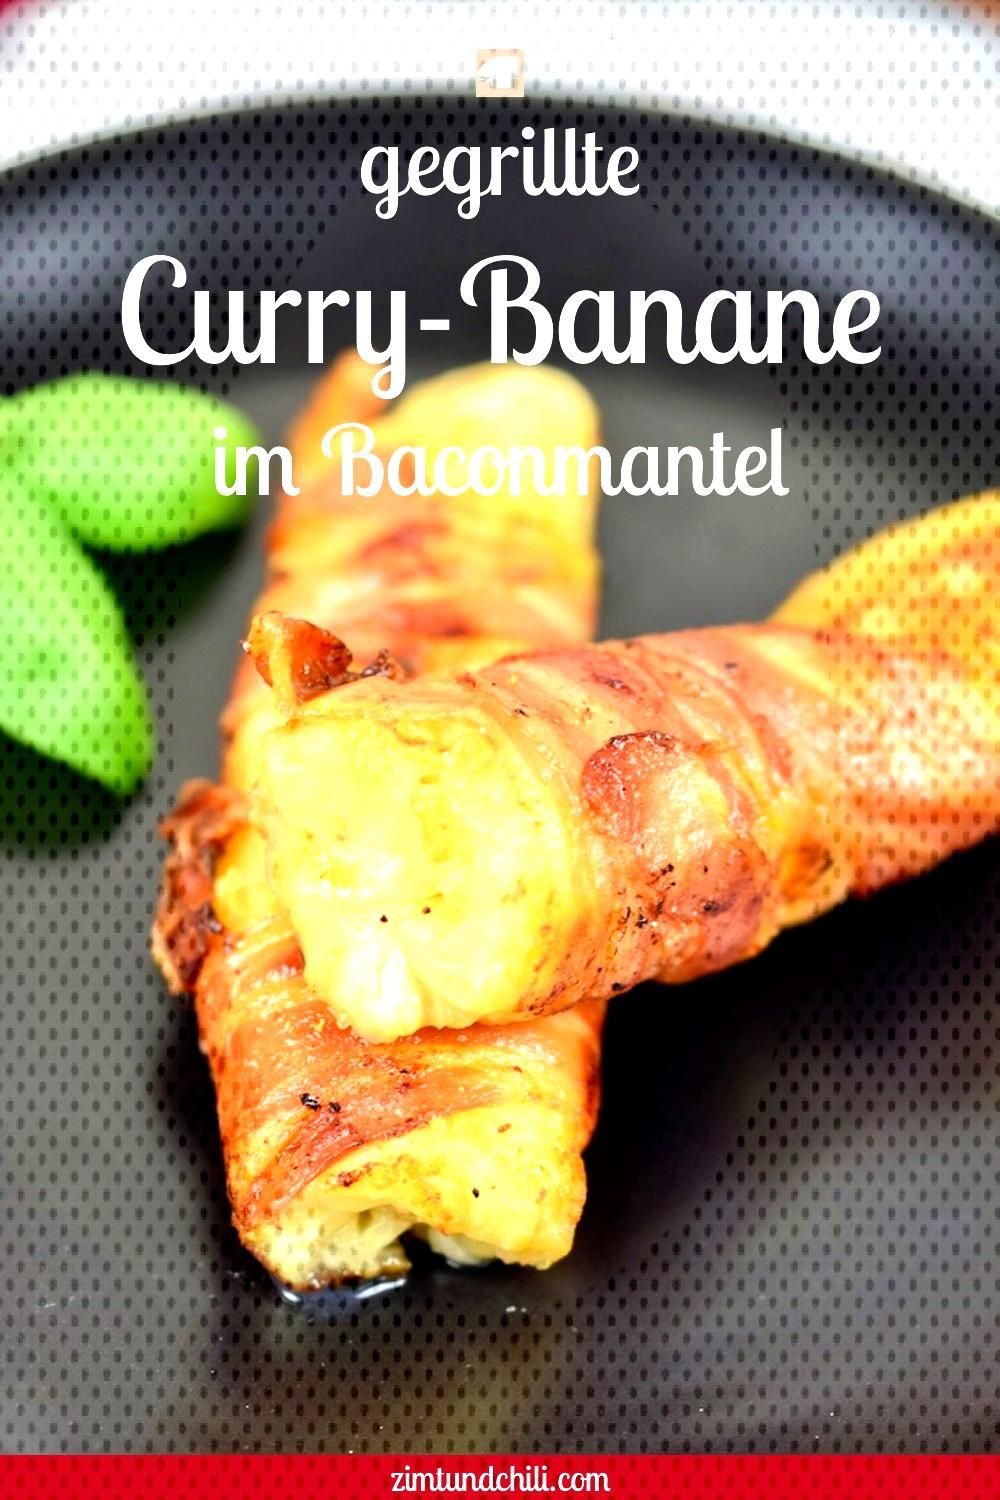 Grilled curry banana in a bacon coating - cinnamon & chili -  GRILLED CURRY BANANA IN A BACON COAT